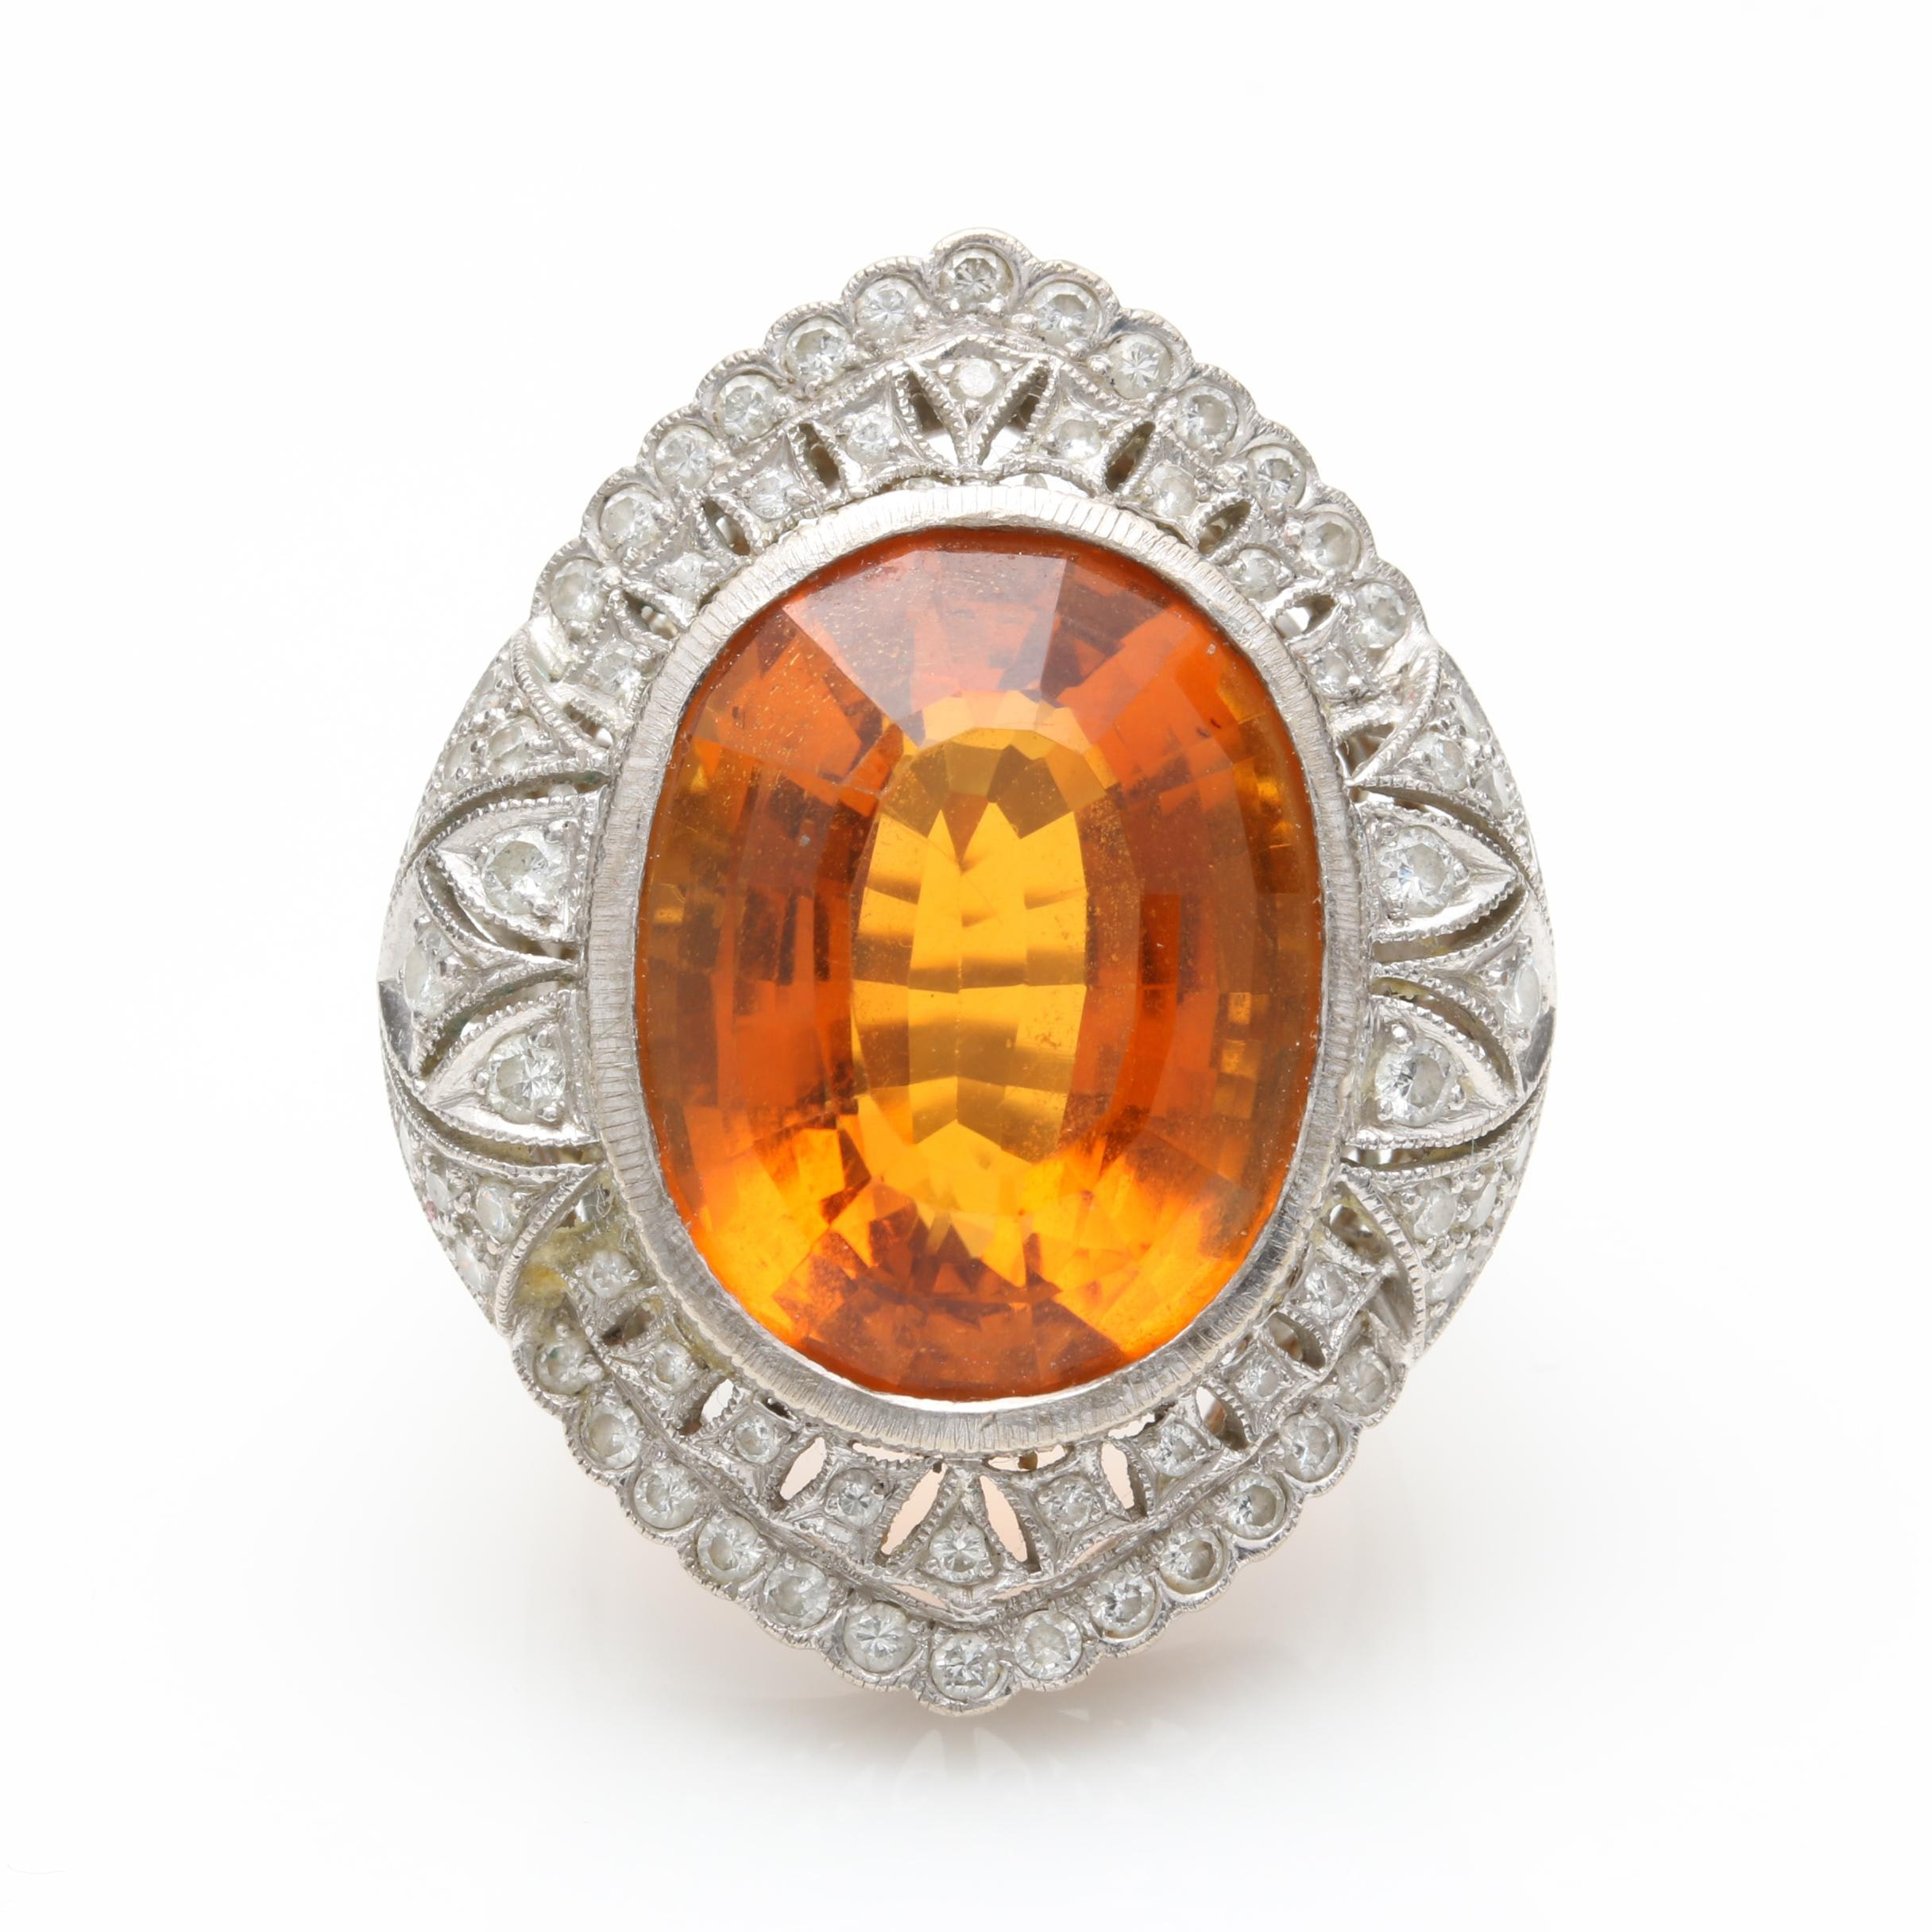 18K White Gold 18.00 CT Citrine and Diamond Ring